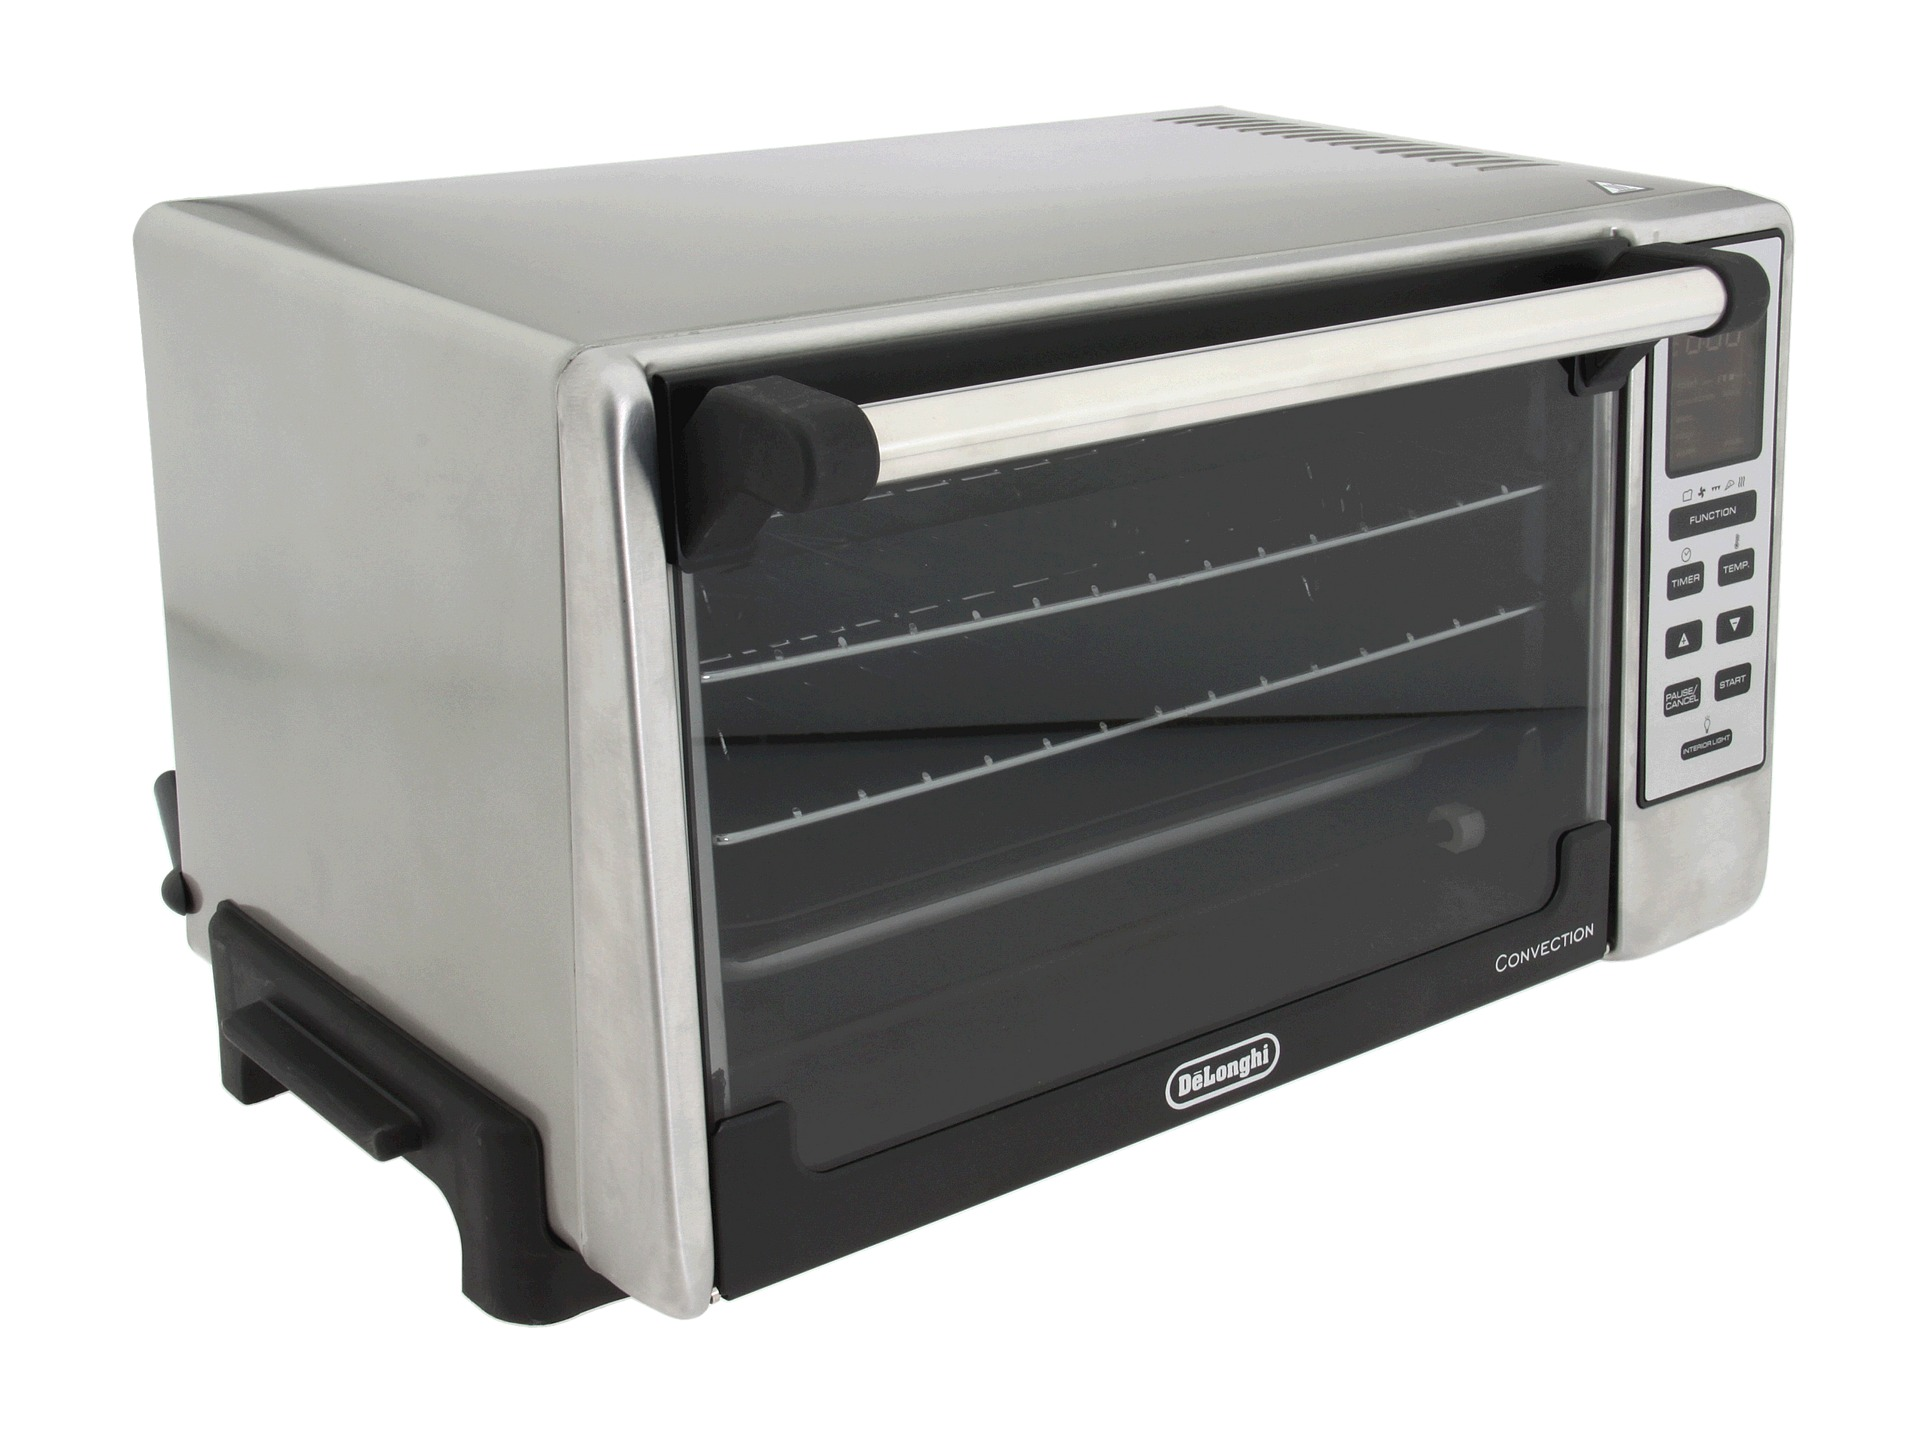 No results for delonghi convection toaster oven - Search Zappos.com